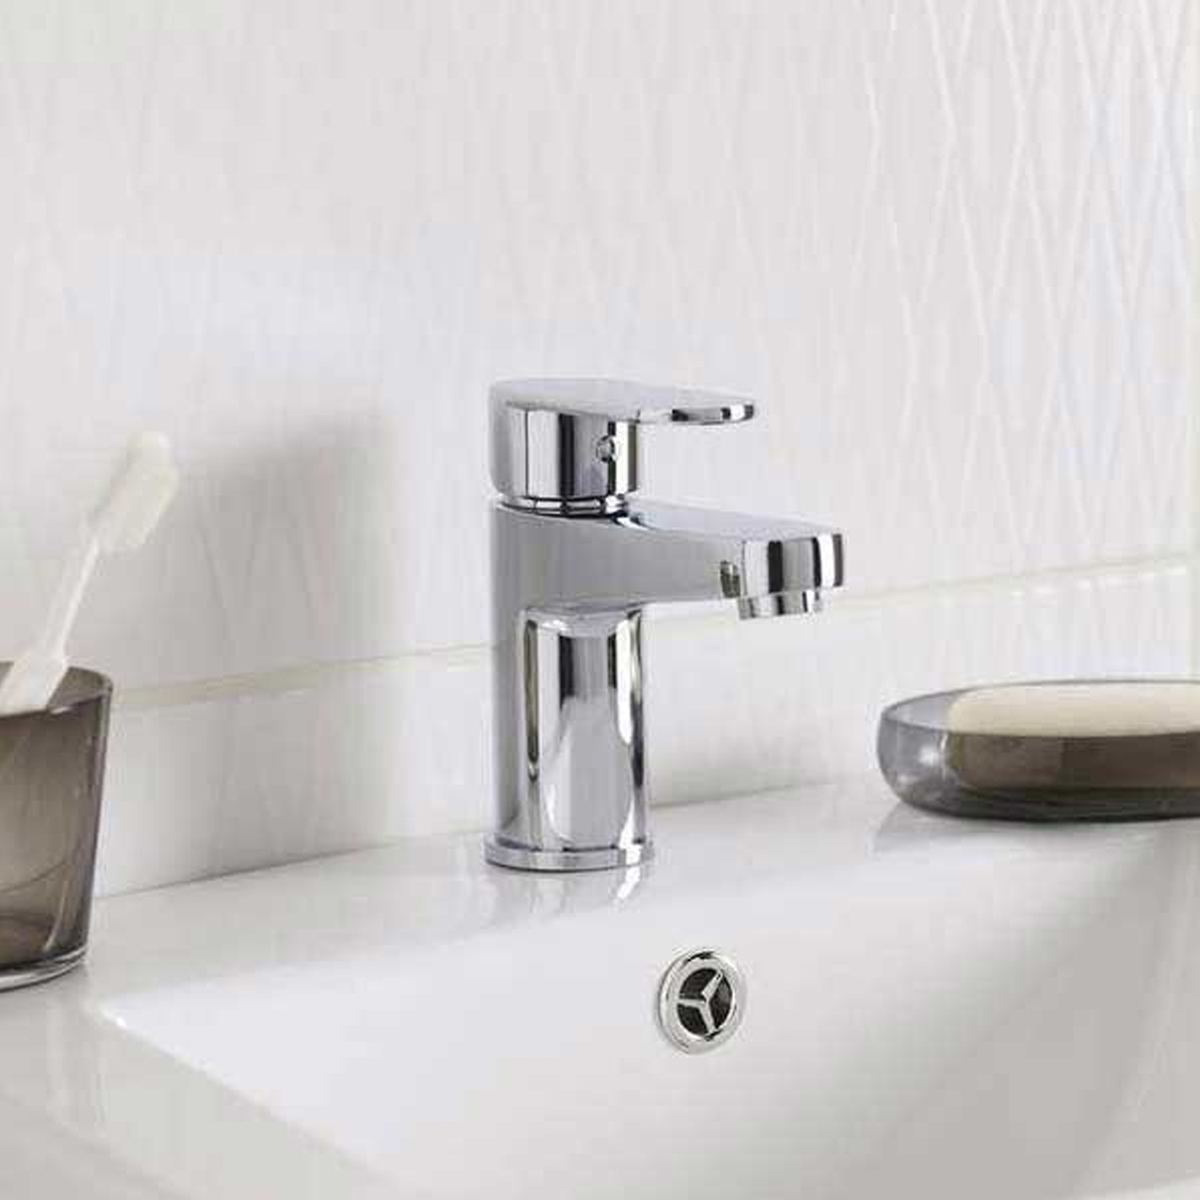 Ultra Ratio Mono Basin Mixer Tap and Bath Filler Tap, Chrome